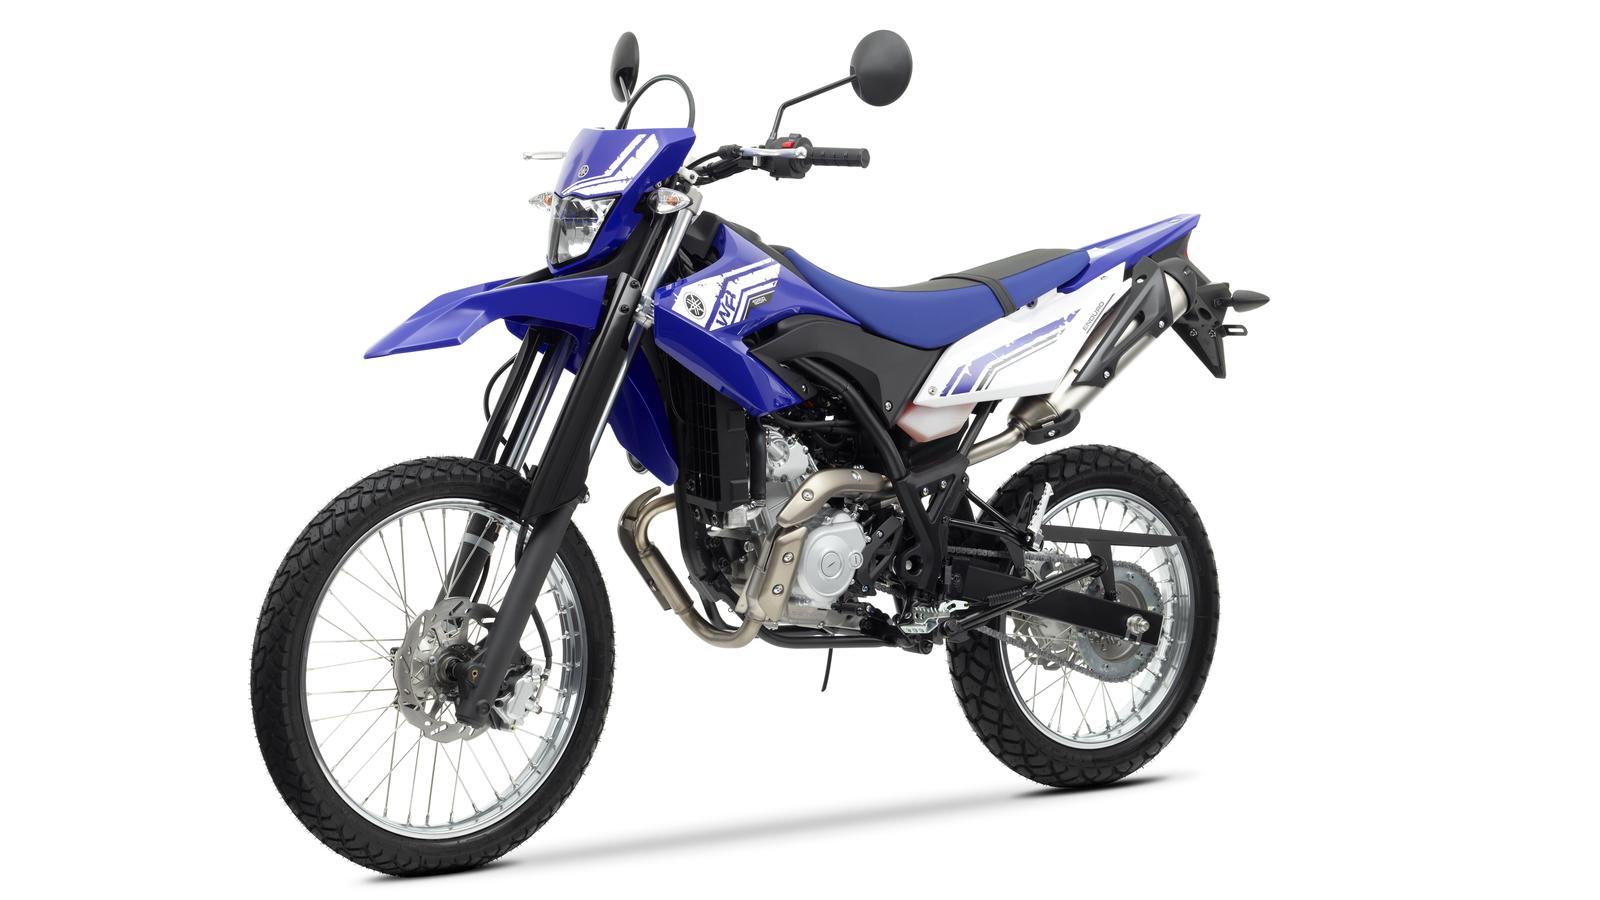 fiche revue technique yamaha wr 125 r 2011. Black Bedroom Furniture Sets. Home Design Ideas